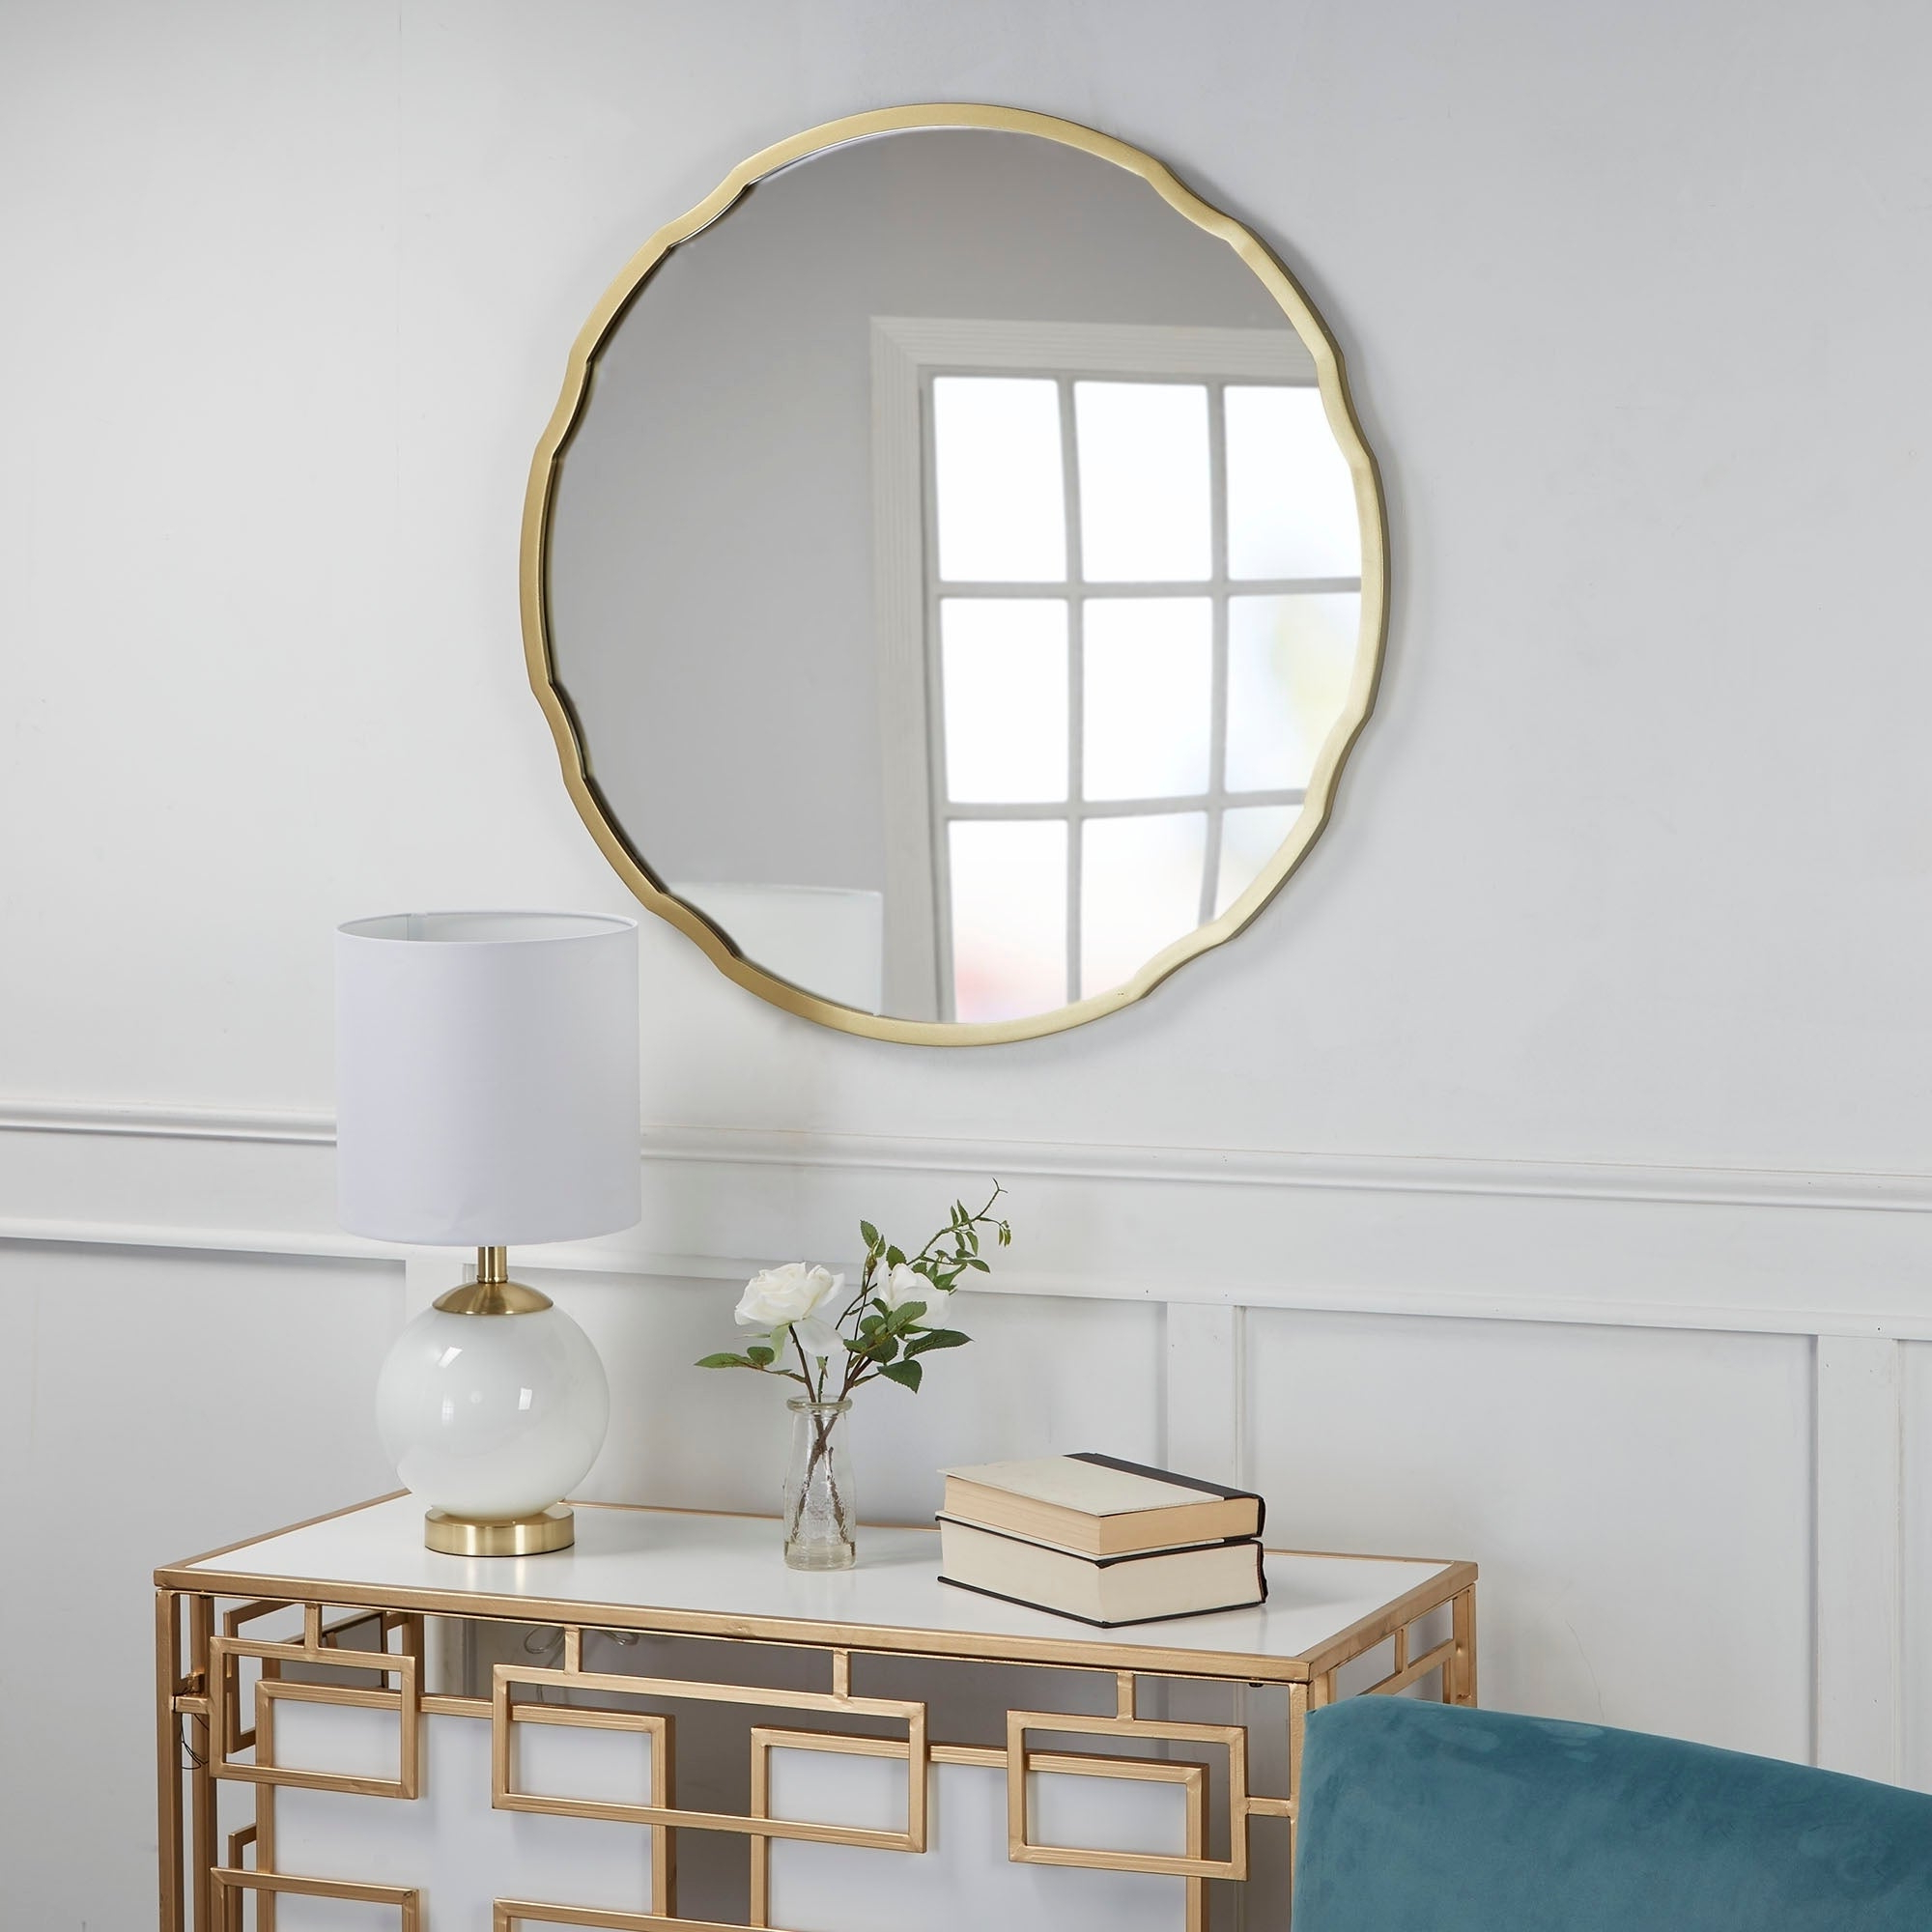 Most Recent Hazel Round Quatrefoil Frame Wall Mirror – Gold For Quatrefoil Wall Mirrors (View 8 of 20)